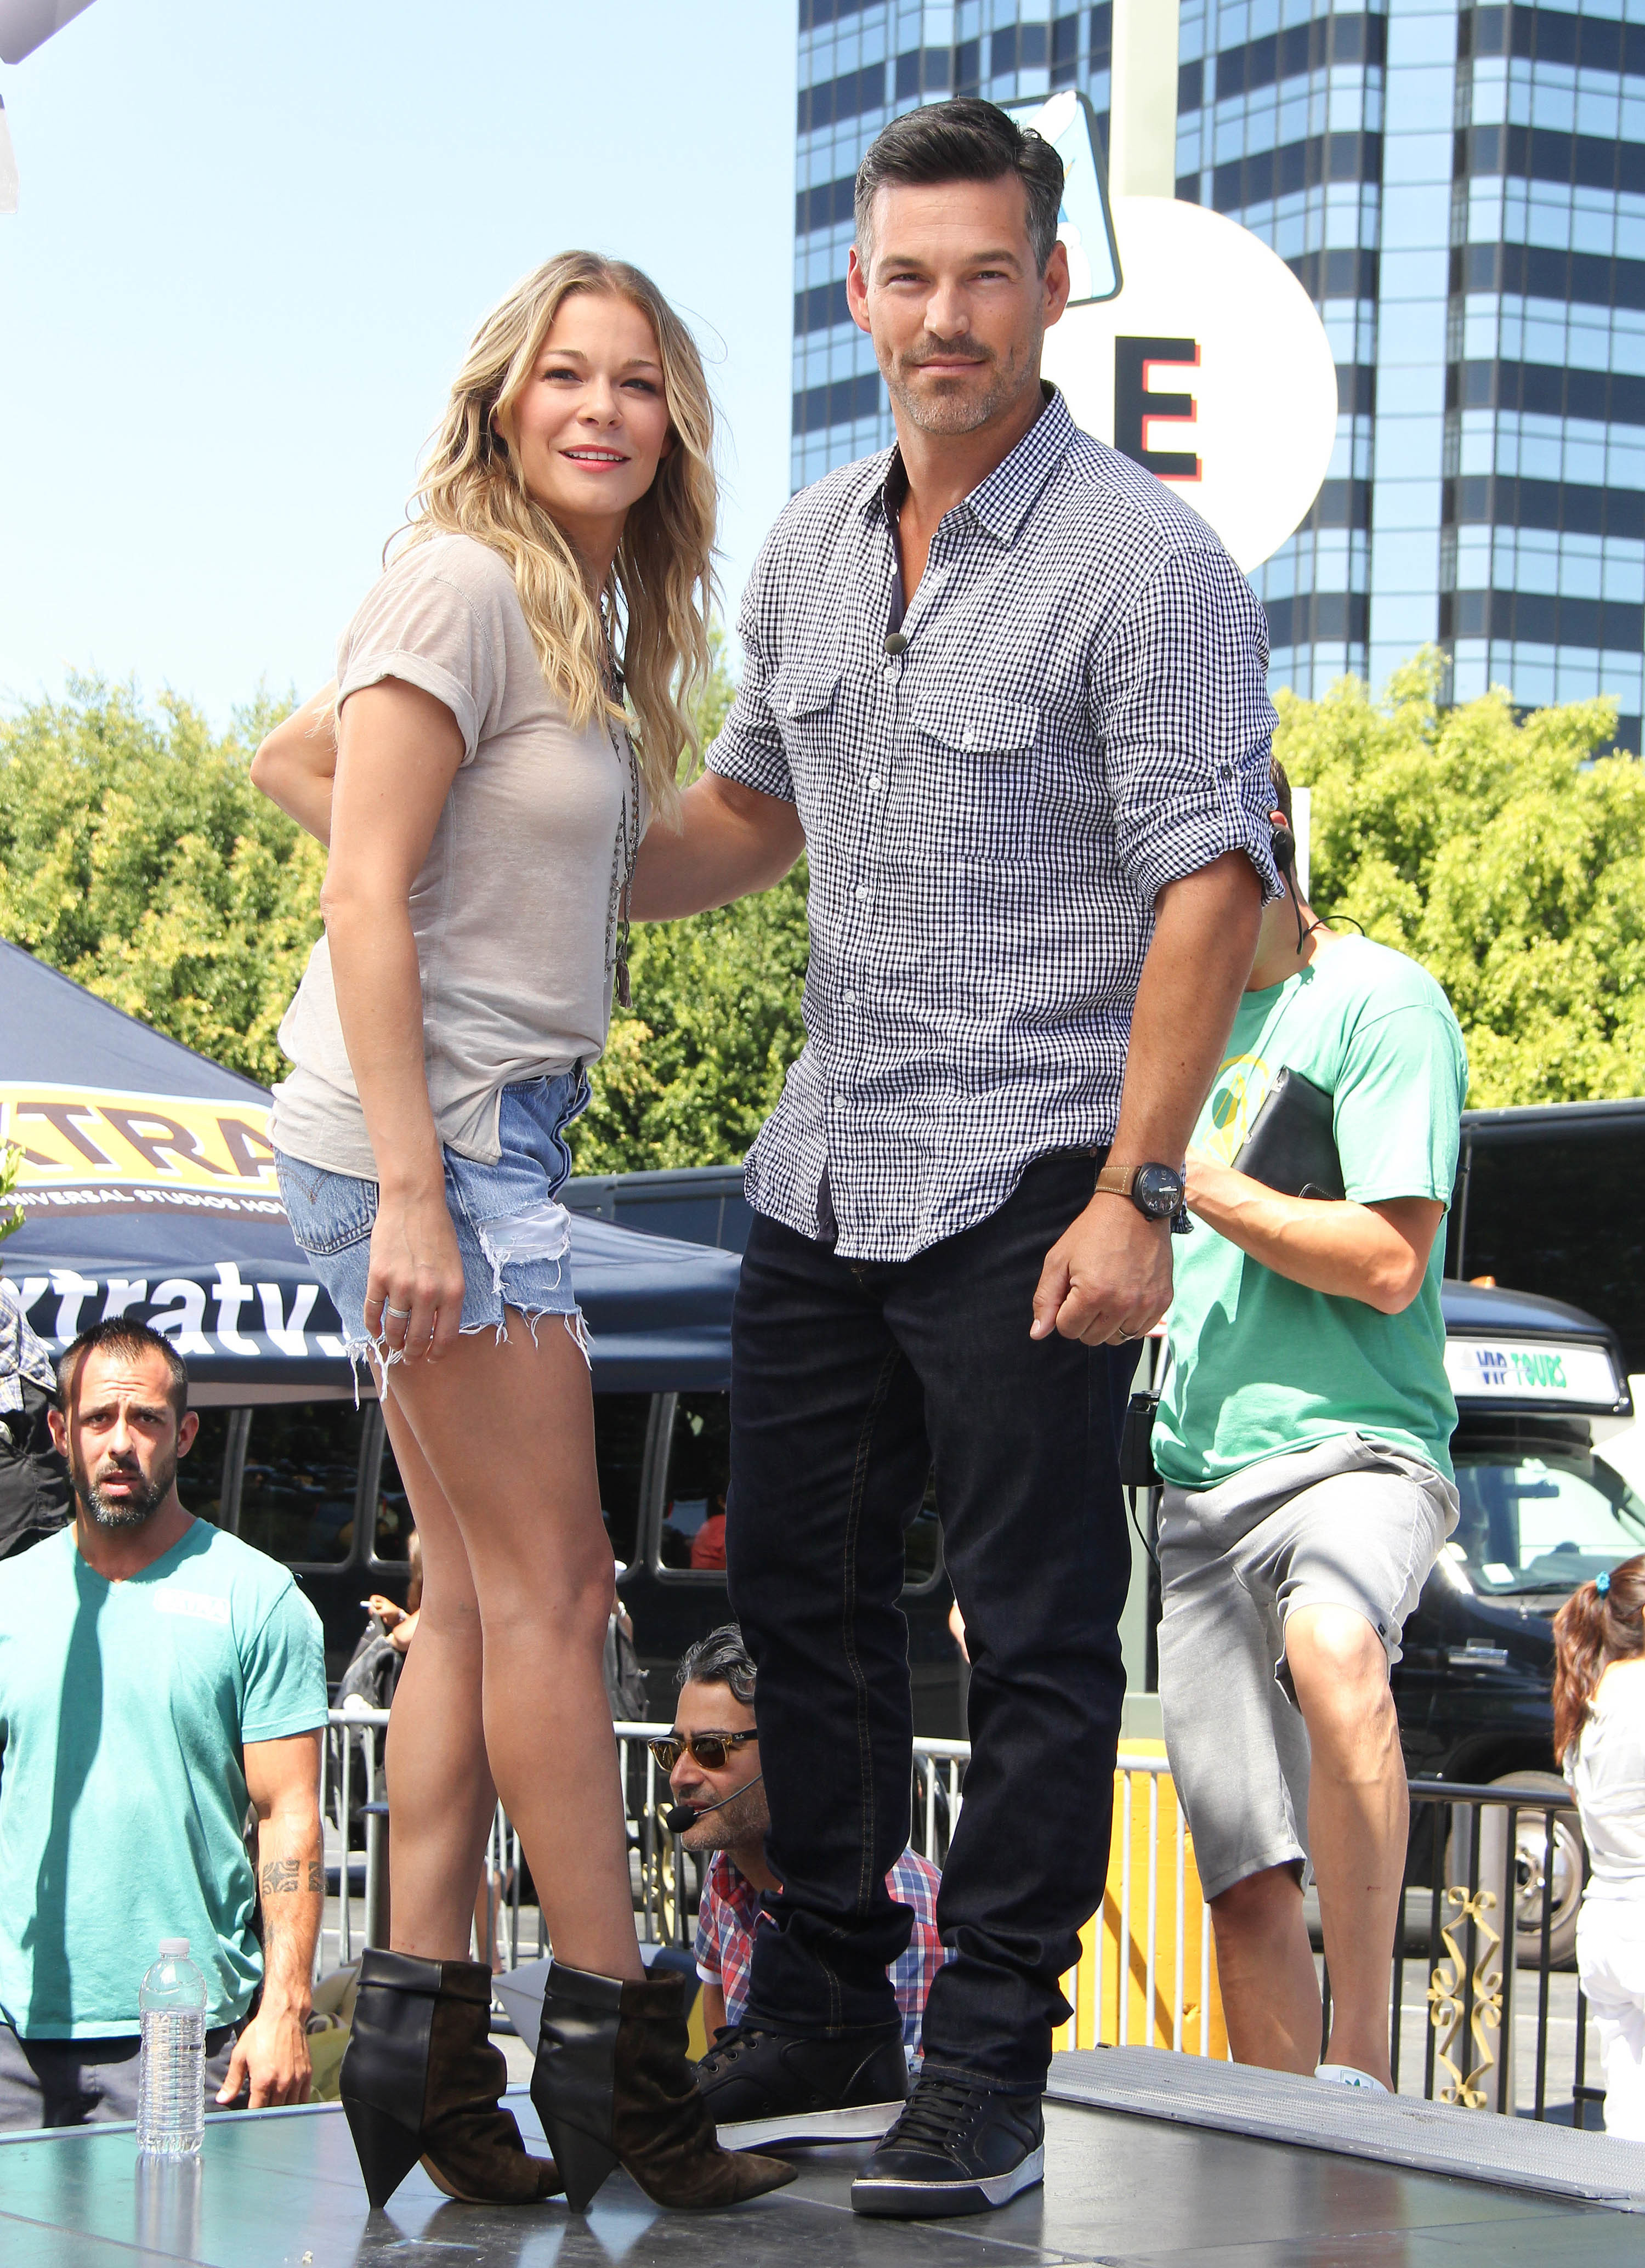 Eddie Cibrian   'Brandi is lying' about LeAnn Rimes and the kids' pics